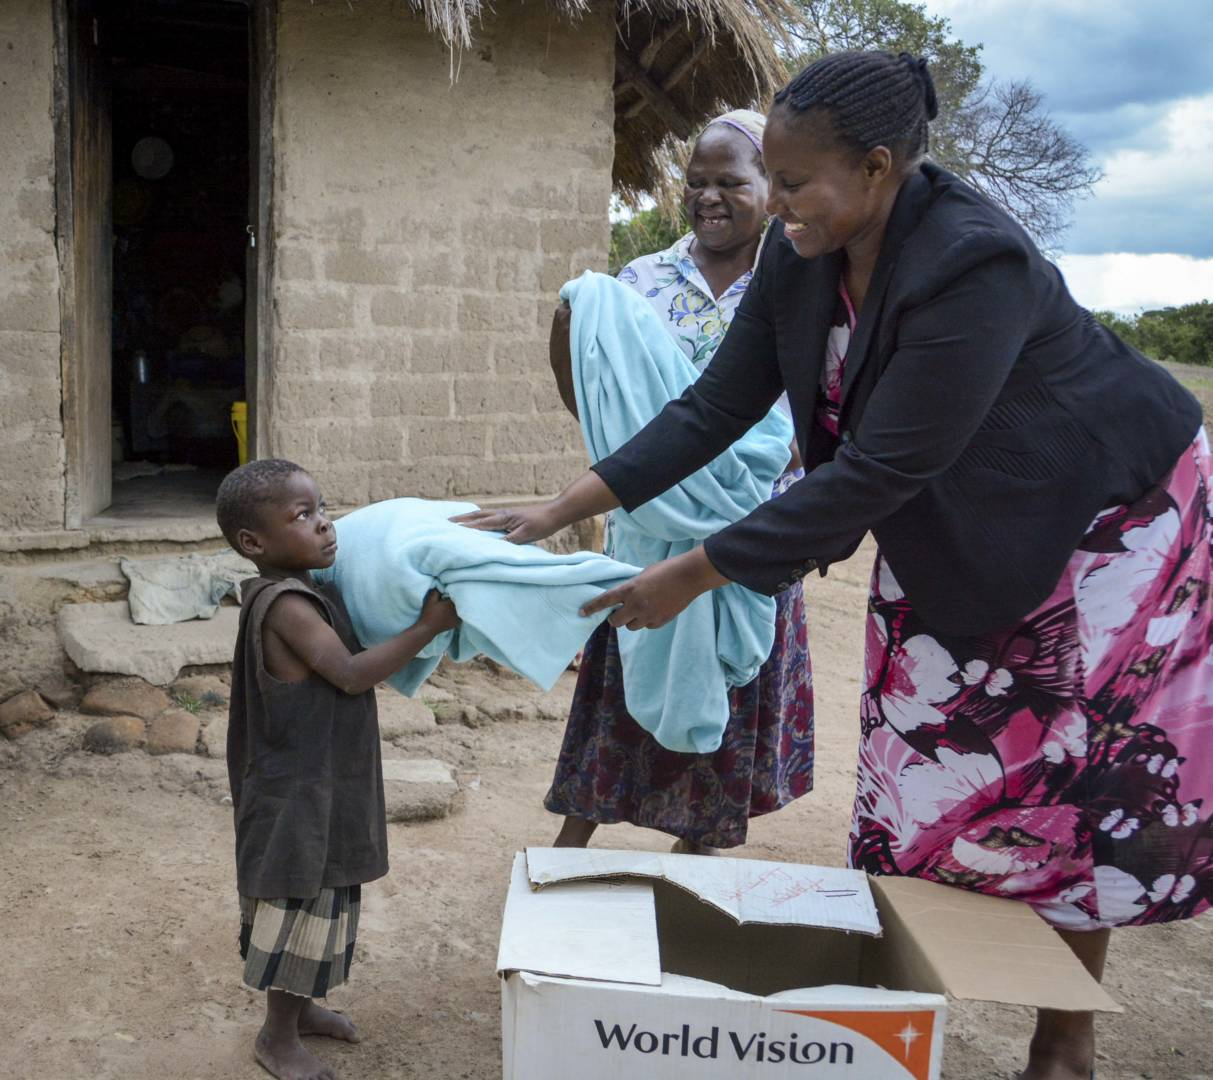 Perpetual Munkpmbwe, a World Vision staff member in Zambia, delivers blankets to Grenda and her grandmother, Rosina. (©2015 World Vision/photo by Collins Kaumba)